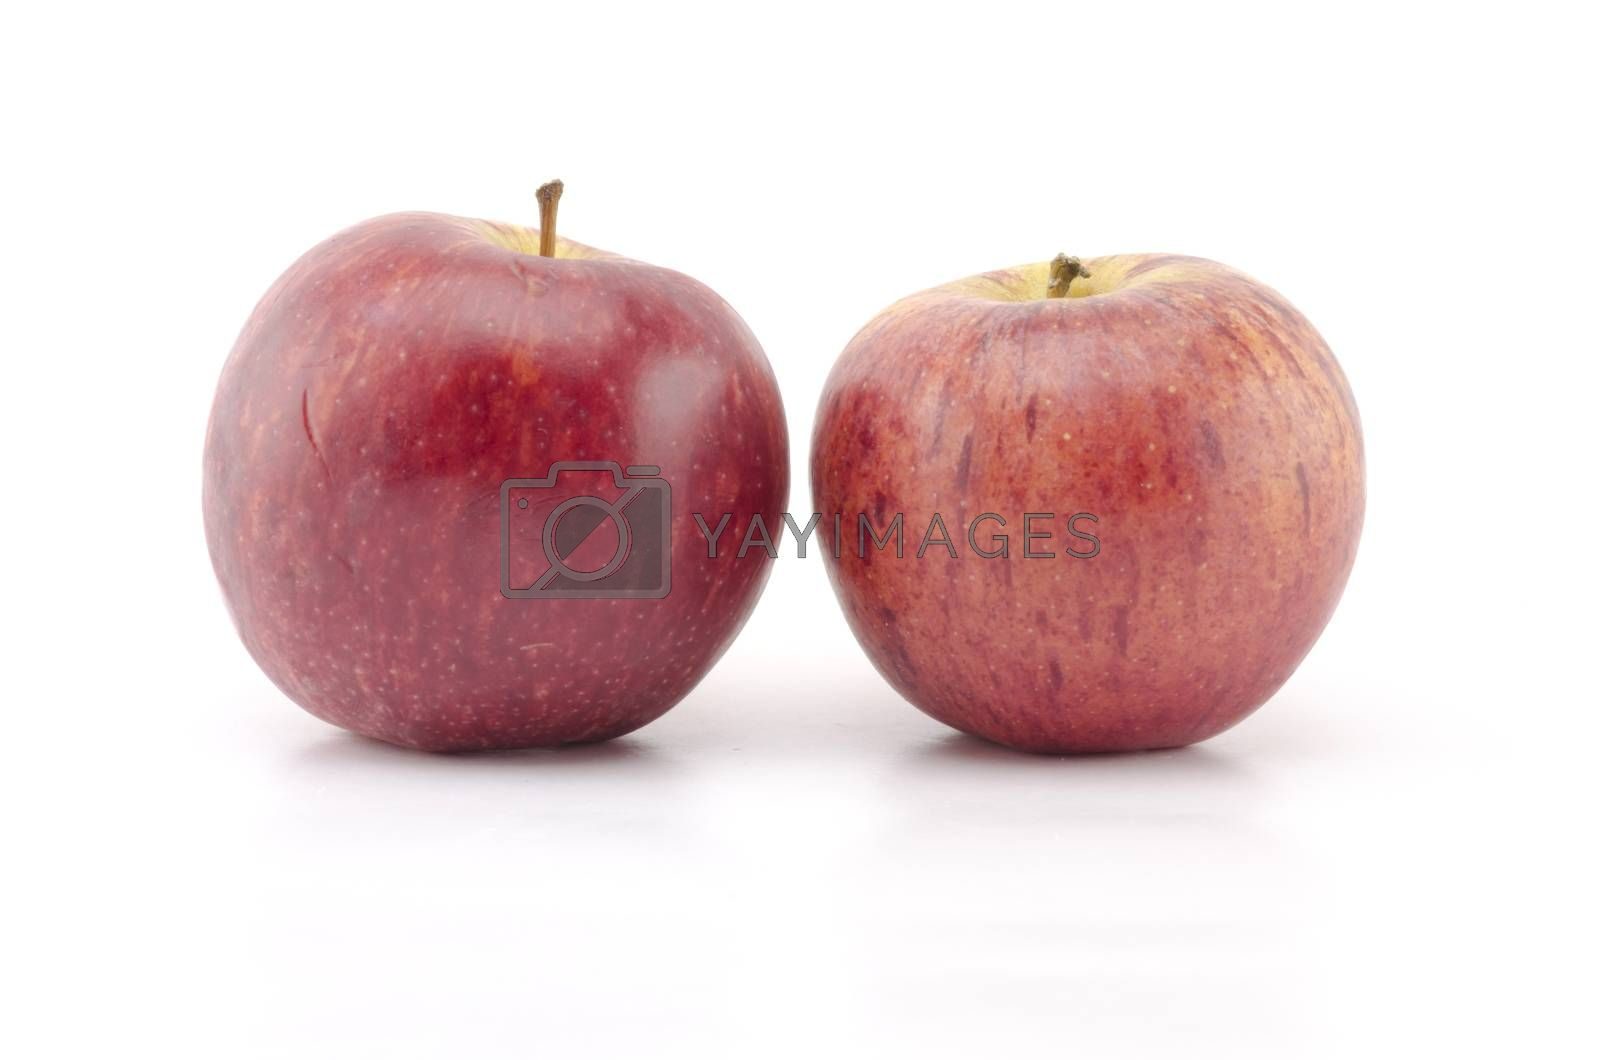 two apples isolated n white background